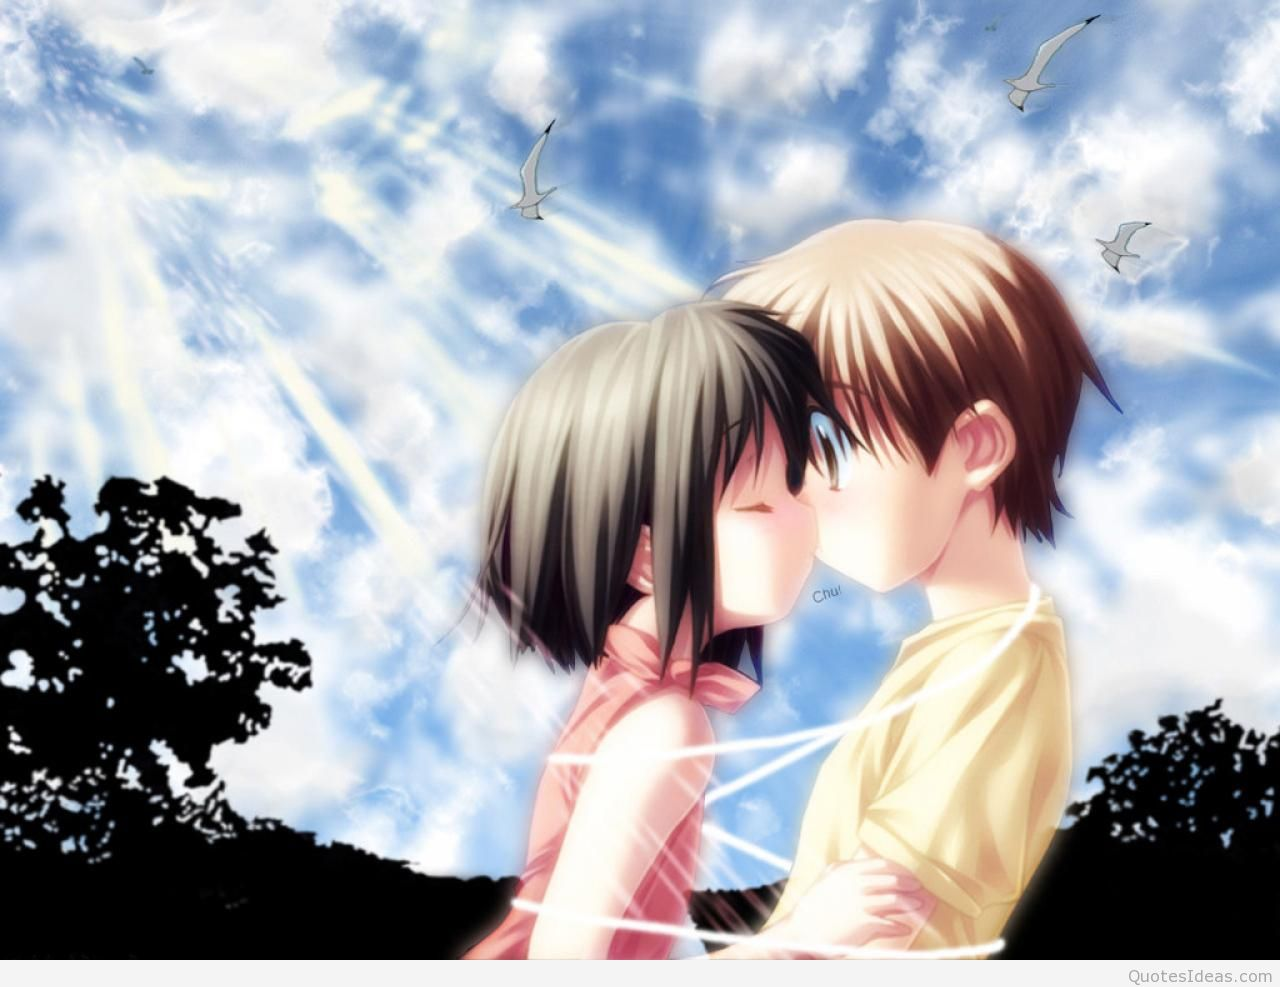 And Anime Couples Cute Love Wallpapers Hd Images Dark Cute Anime Kiss 1280x987 Download Hd Wallpaper Wallpapertip